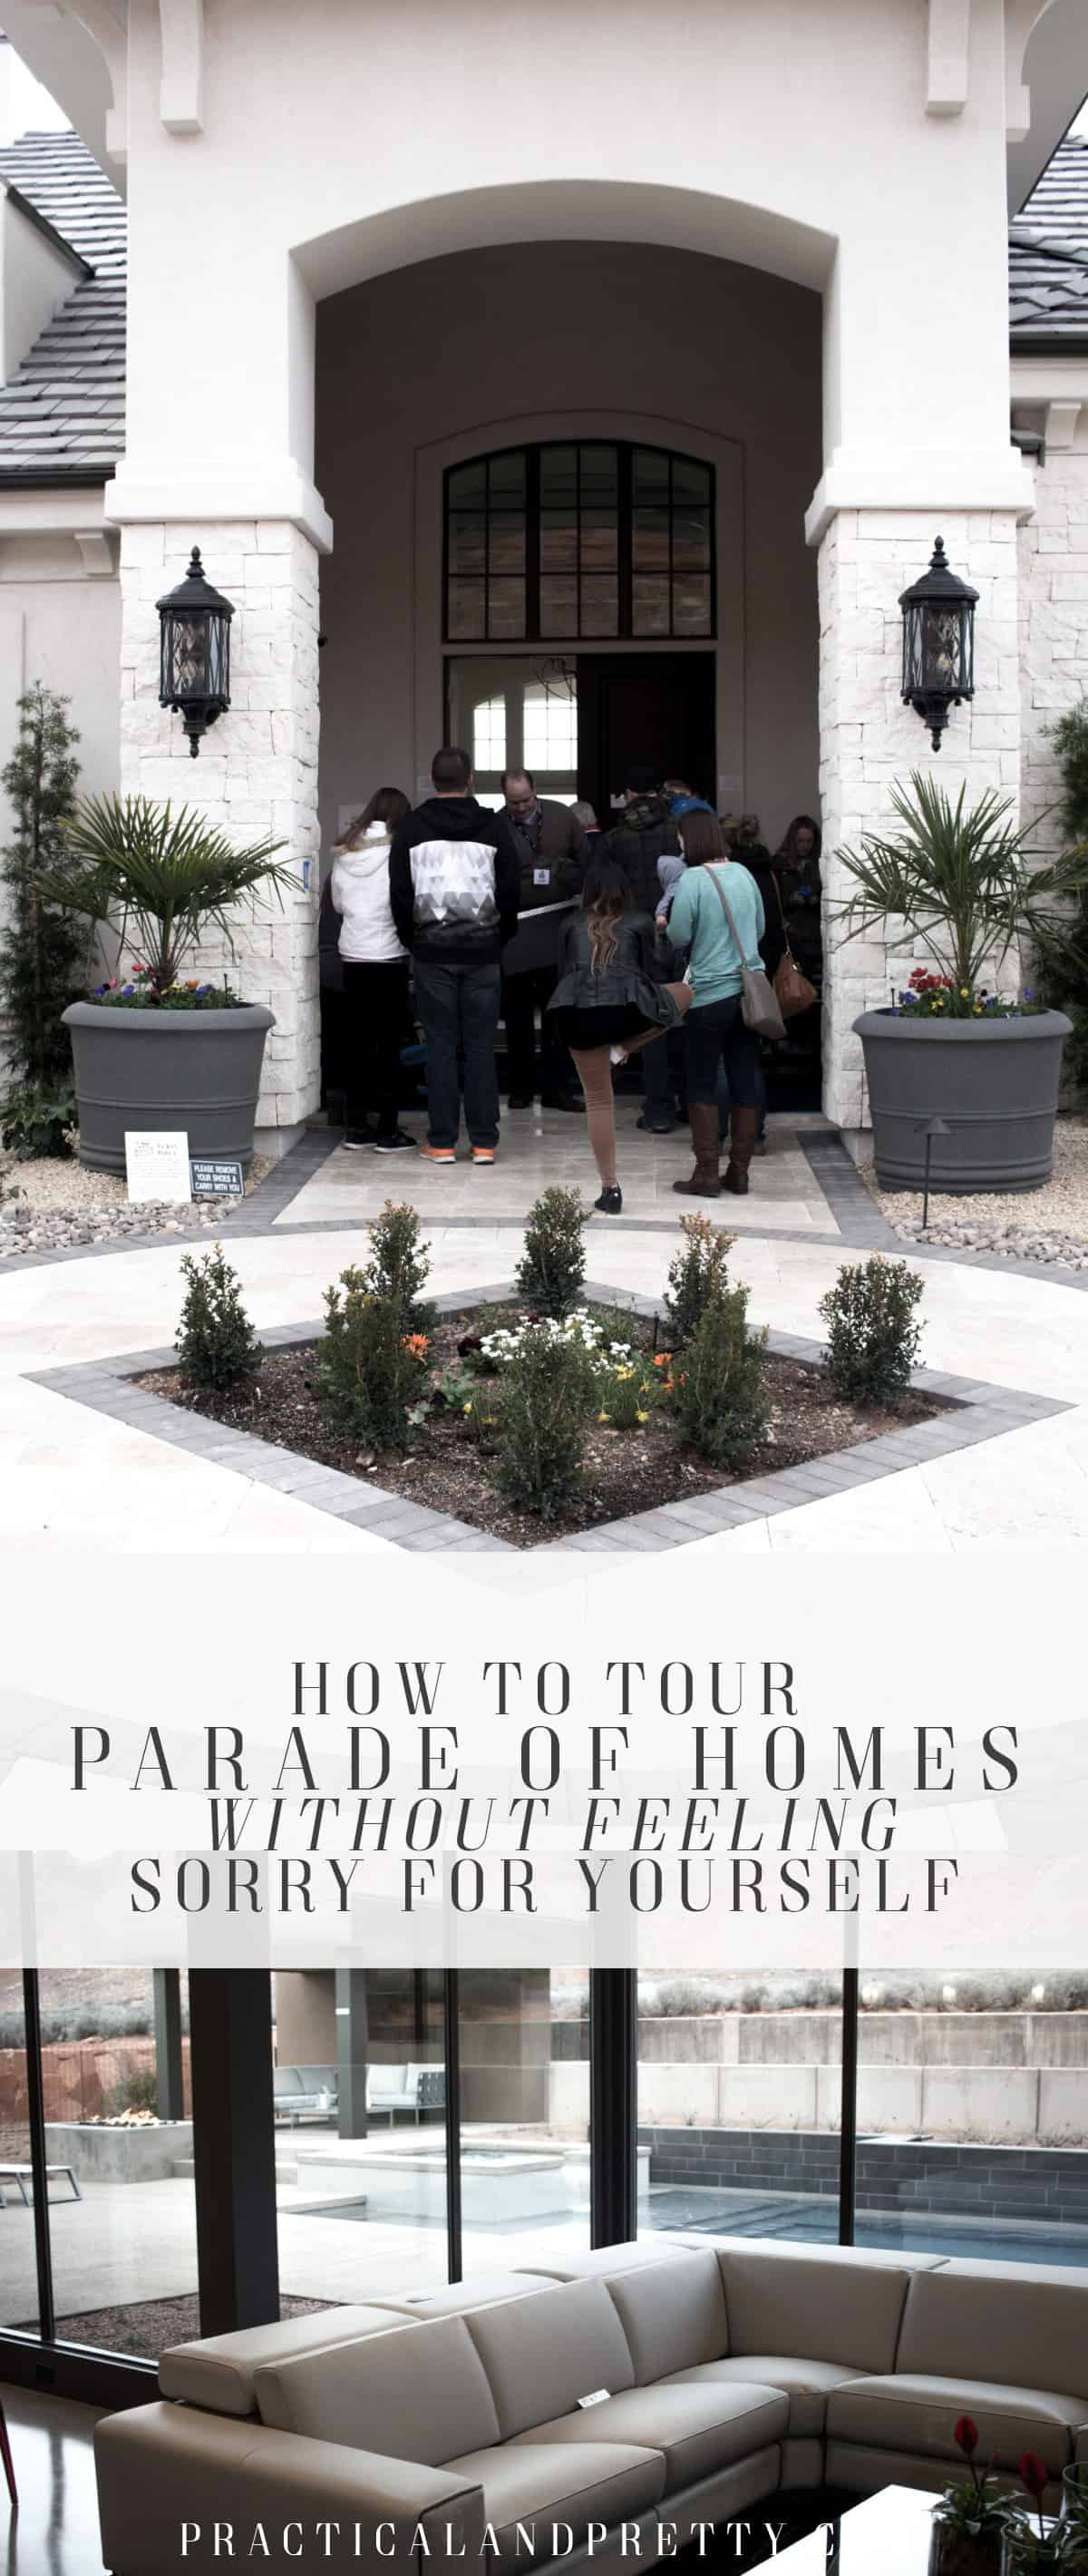 The Parade of Homes can be inspiring if you're in the right mindset. Here are a few tricks I use not to feel bad for myself while I tour the homes!